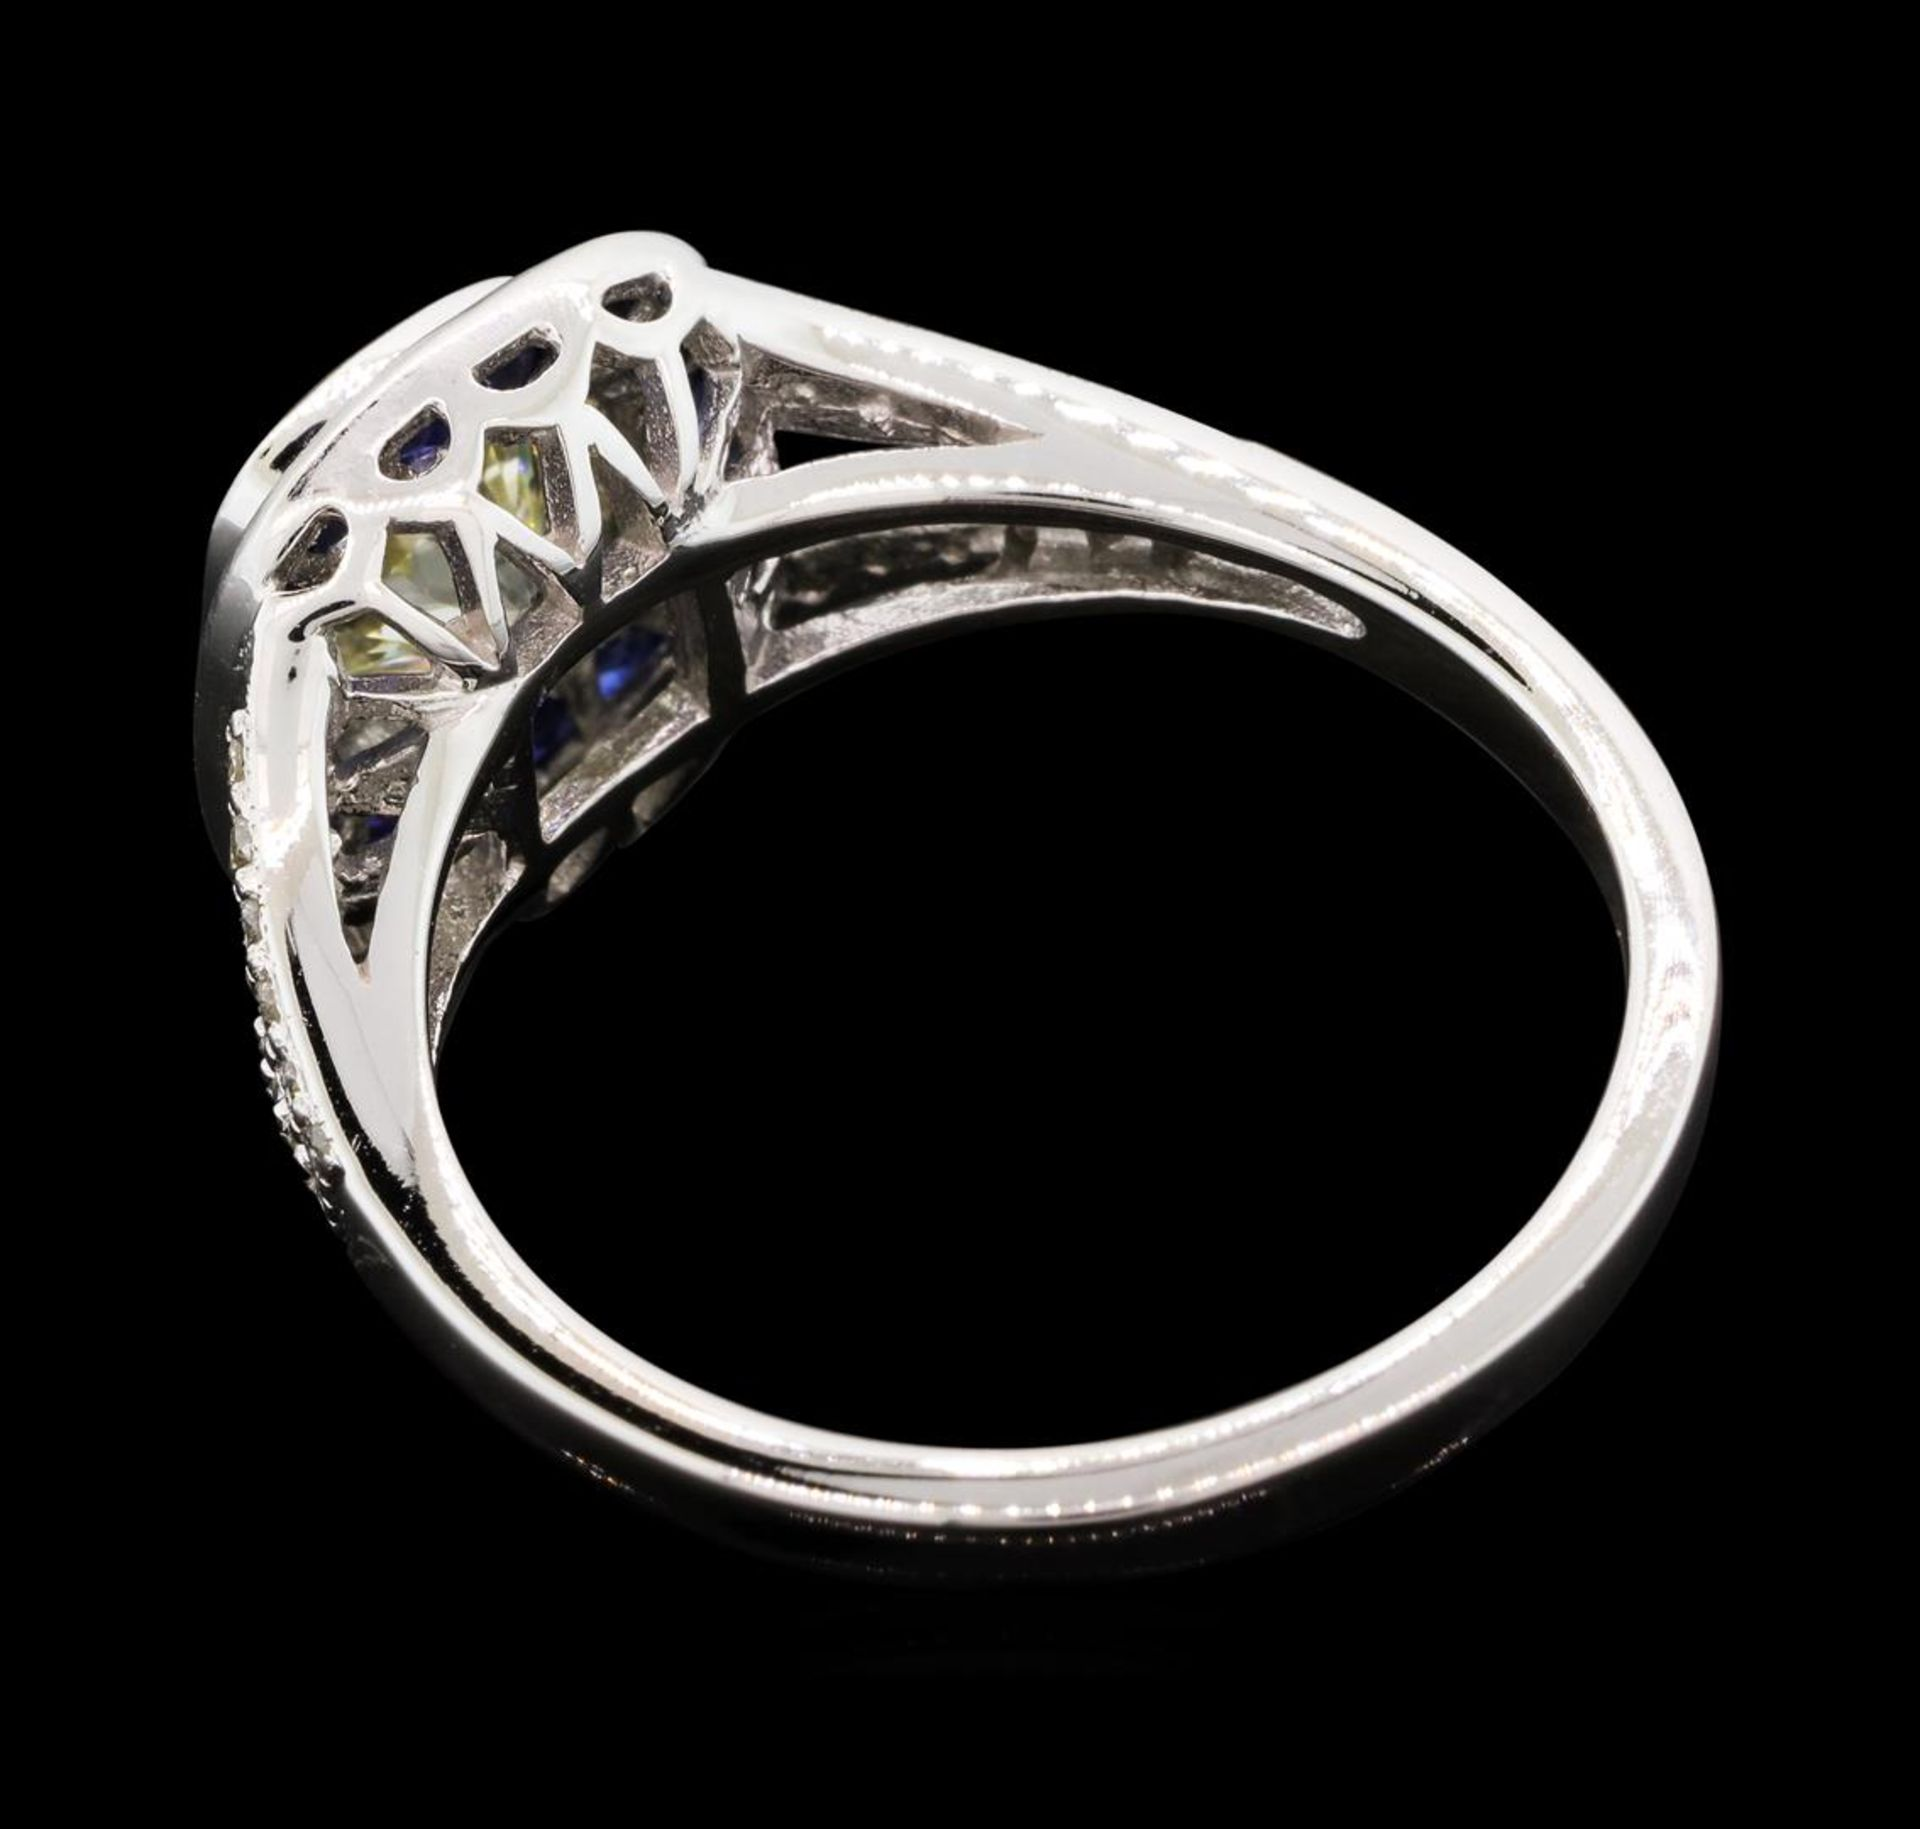 1.05 ctw Diamond And Sapphire Ring - 18KT White Gold - Image 3 of 5